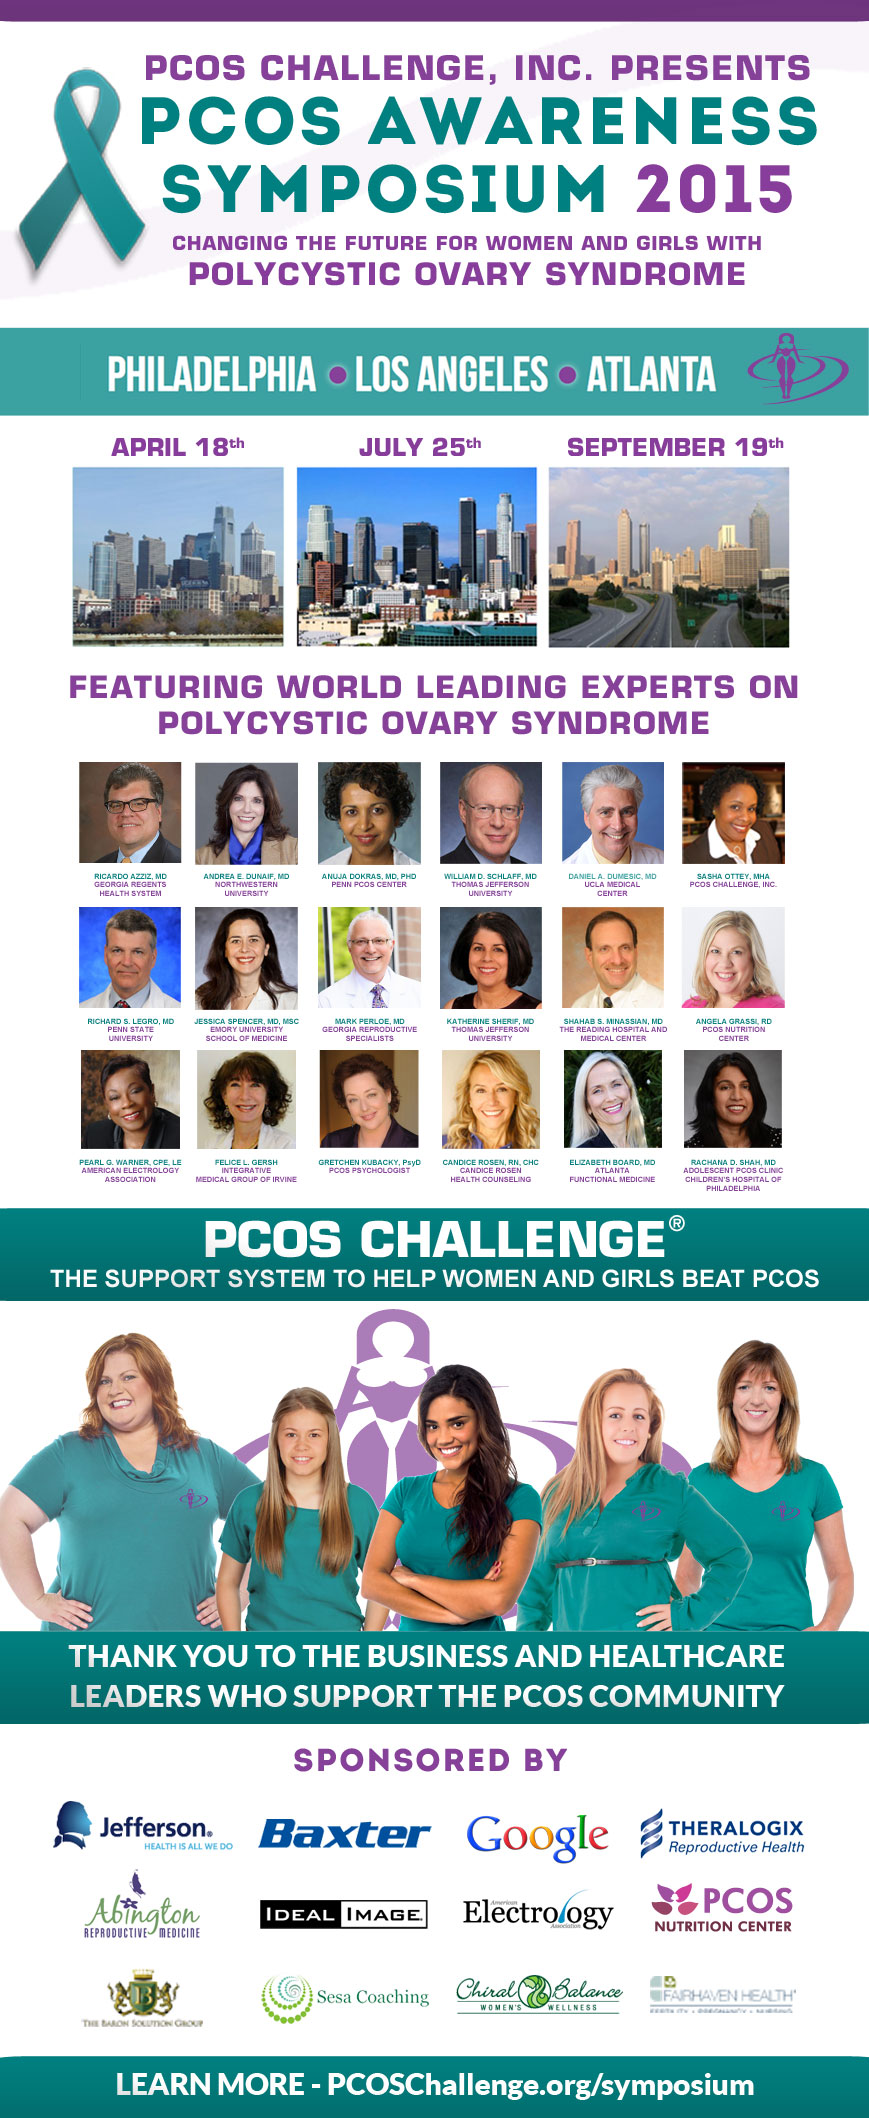 2015 PCOS Awareness Symposium - Presented by PCOS Challenge, Inc